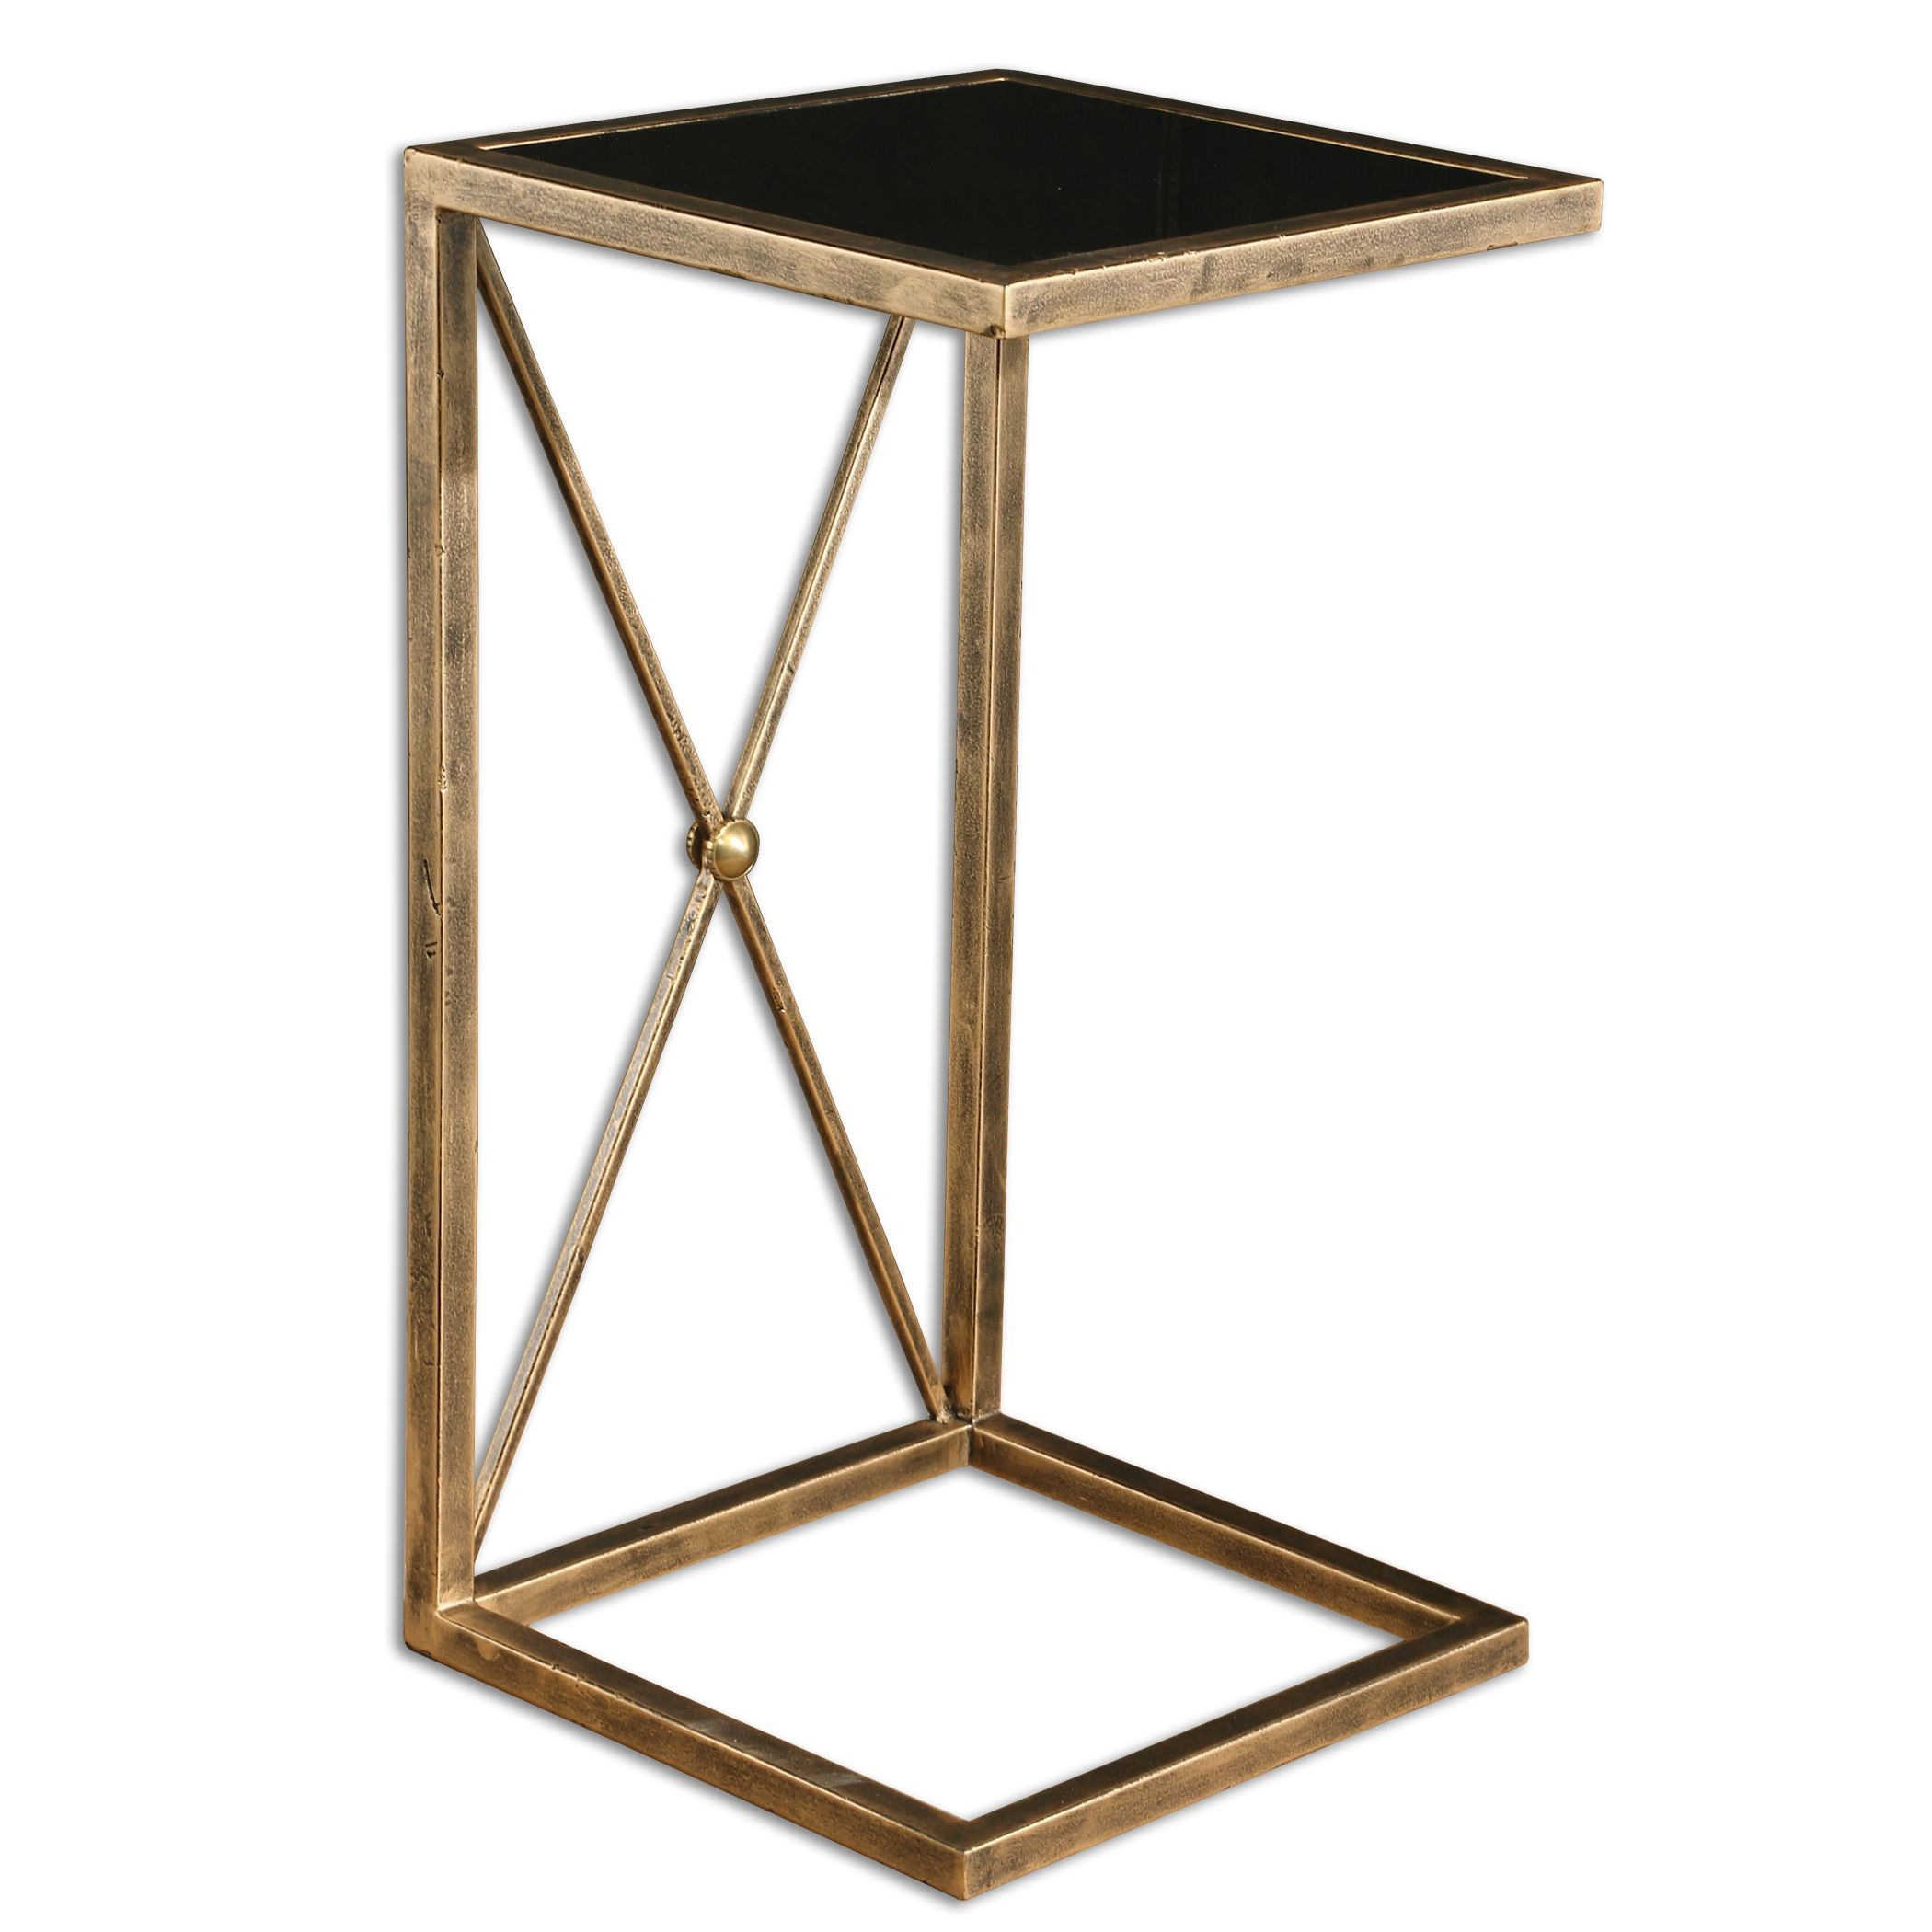 uttermost zafina gold side table free shipping today rubati accent triangle target dining set wooden trestle sideboard black farmhouse home furniture tables edmonton bedside cover